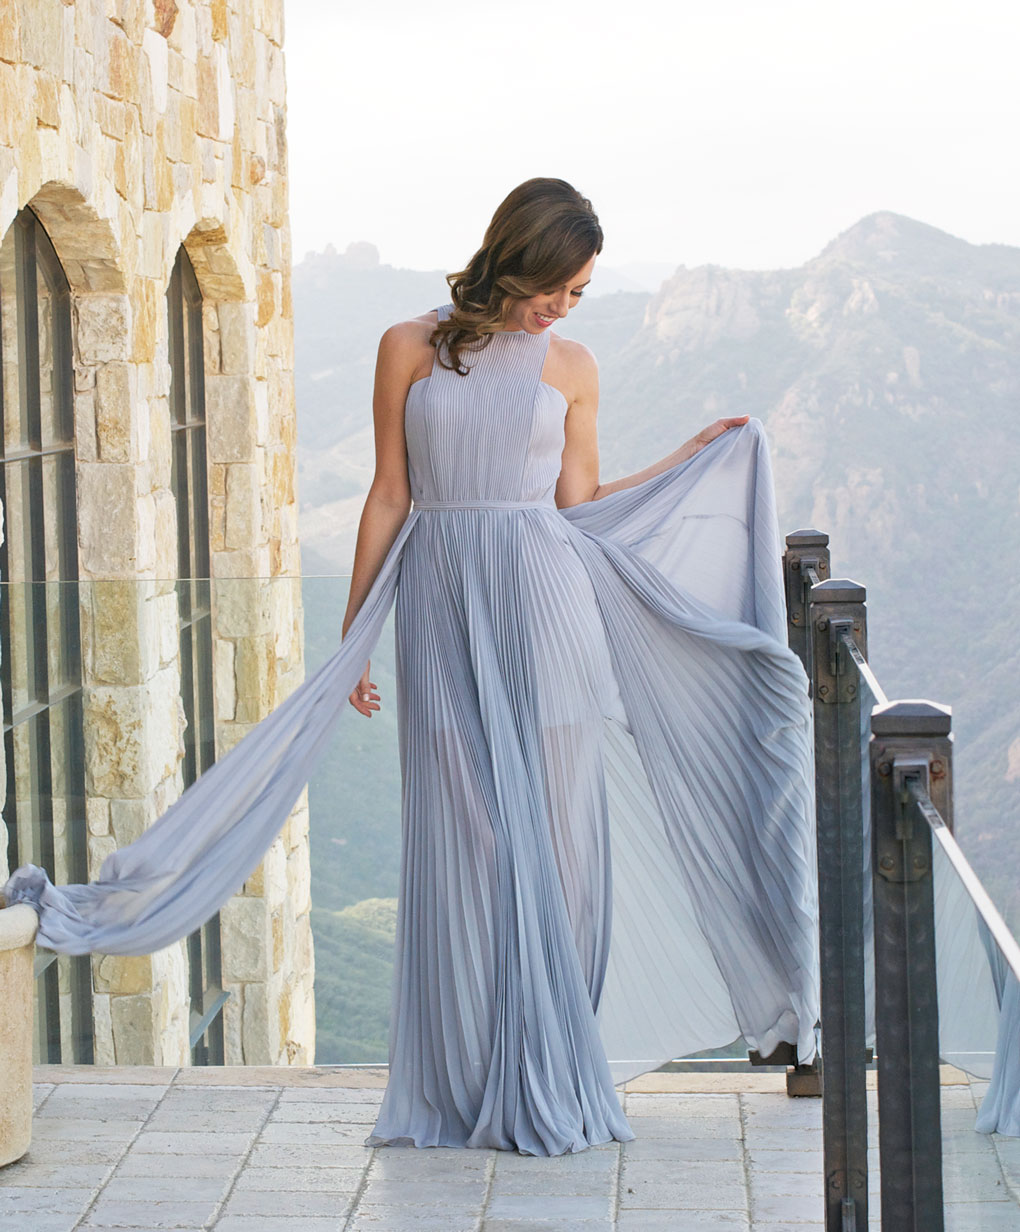 Sydne Style gives tips on where to order unique grey bridesmaid dresses